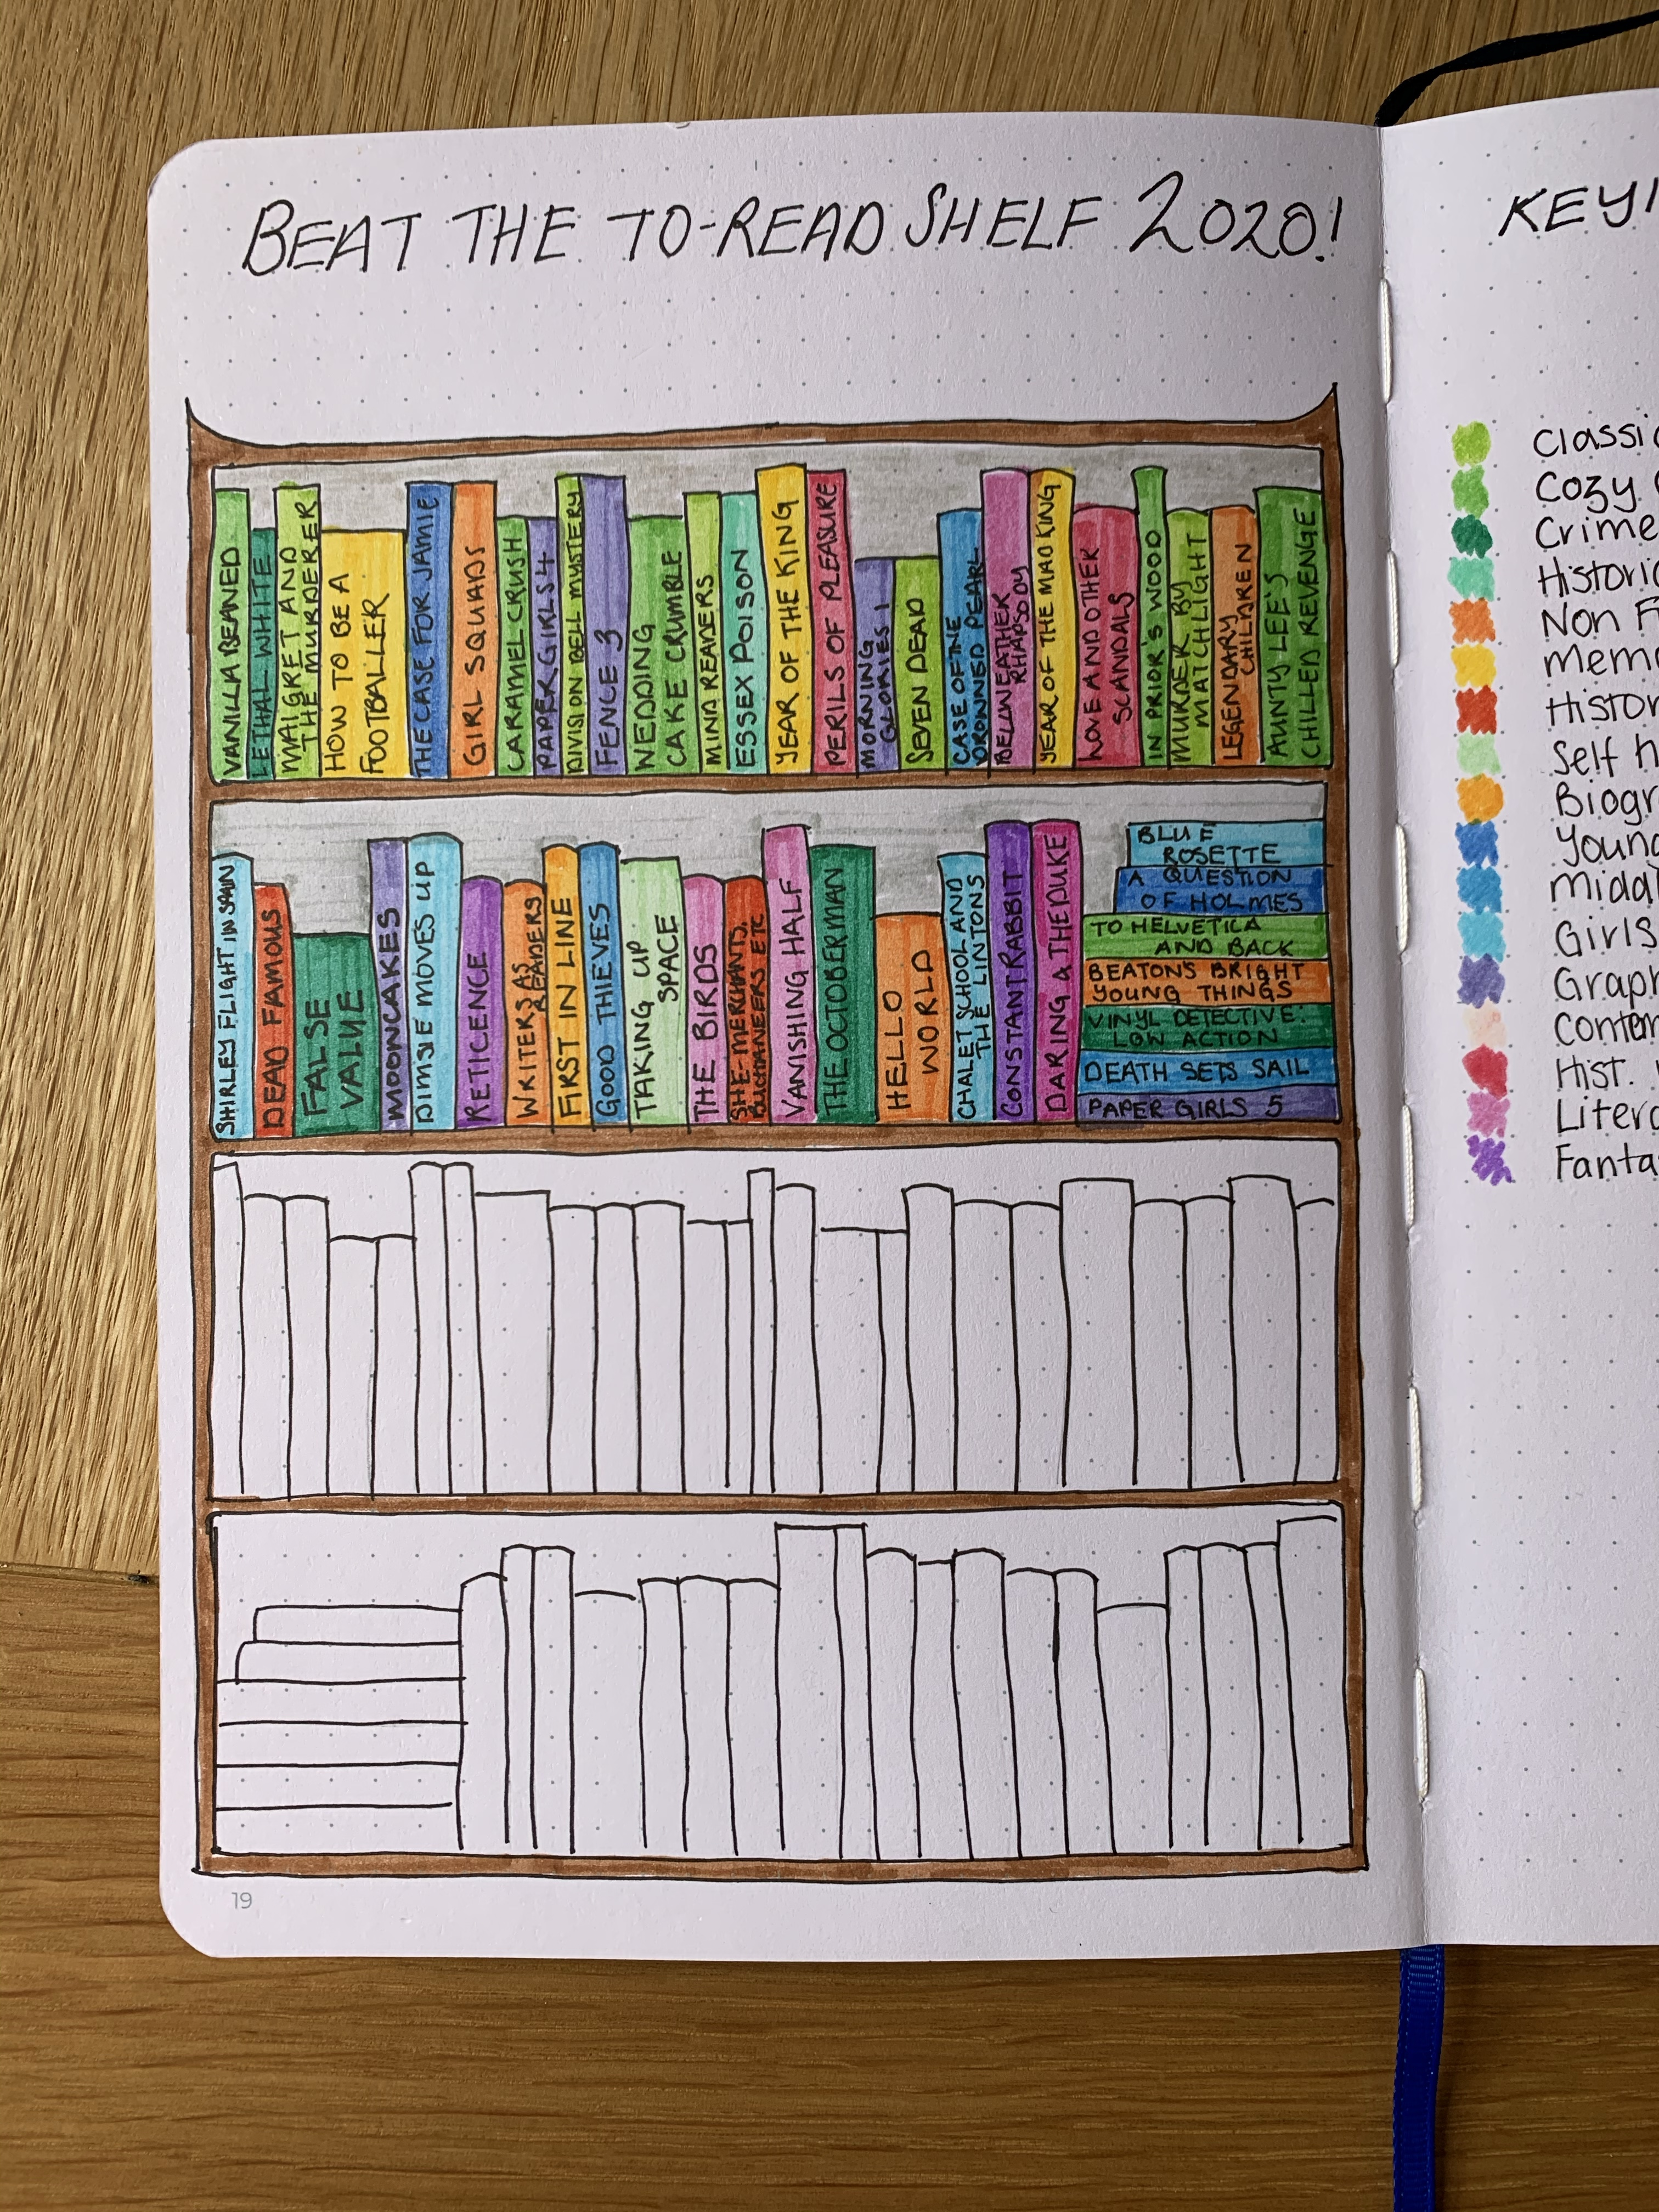 Drawing of a bookshelf with books on half the shelves coloured in